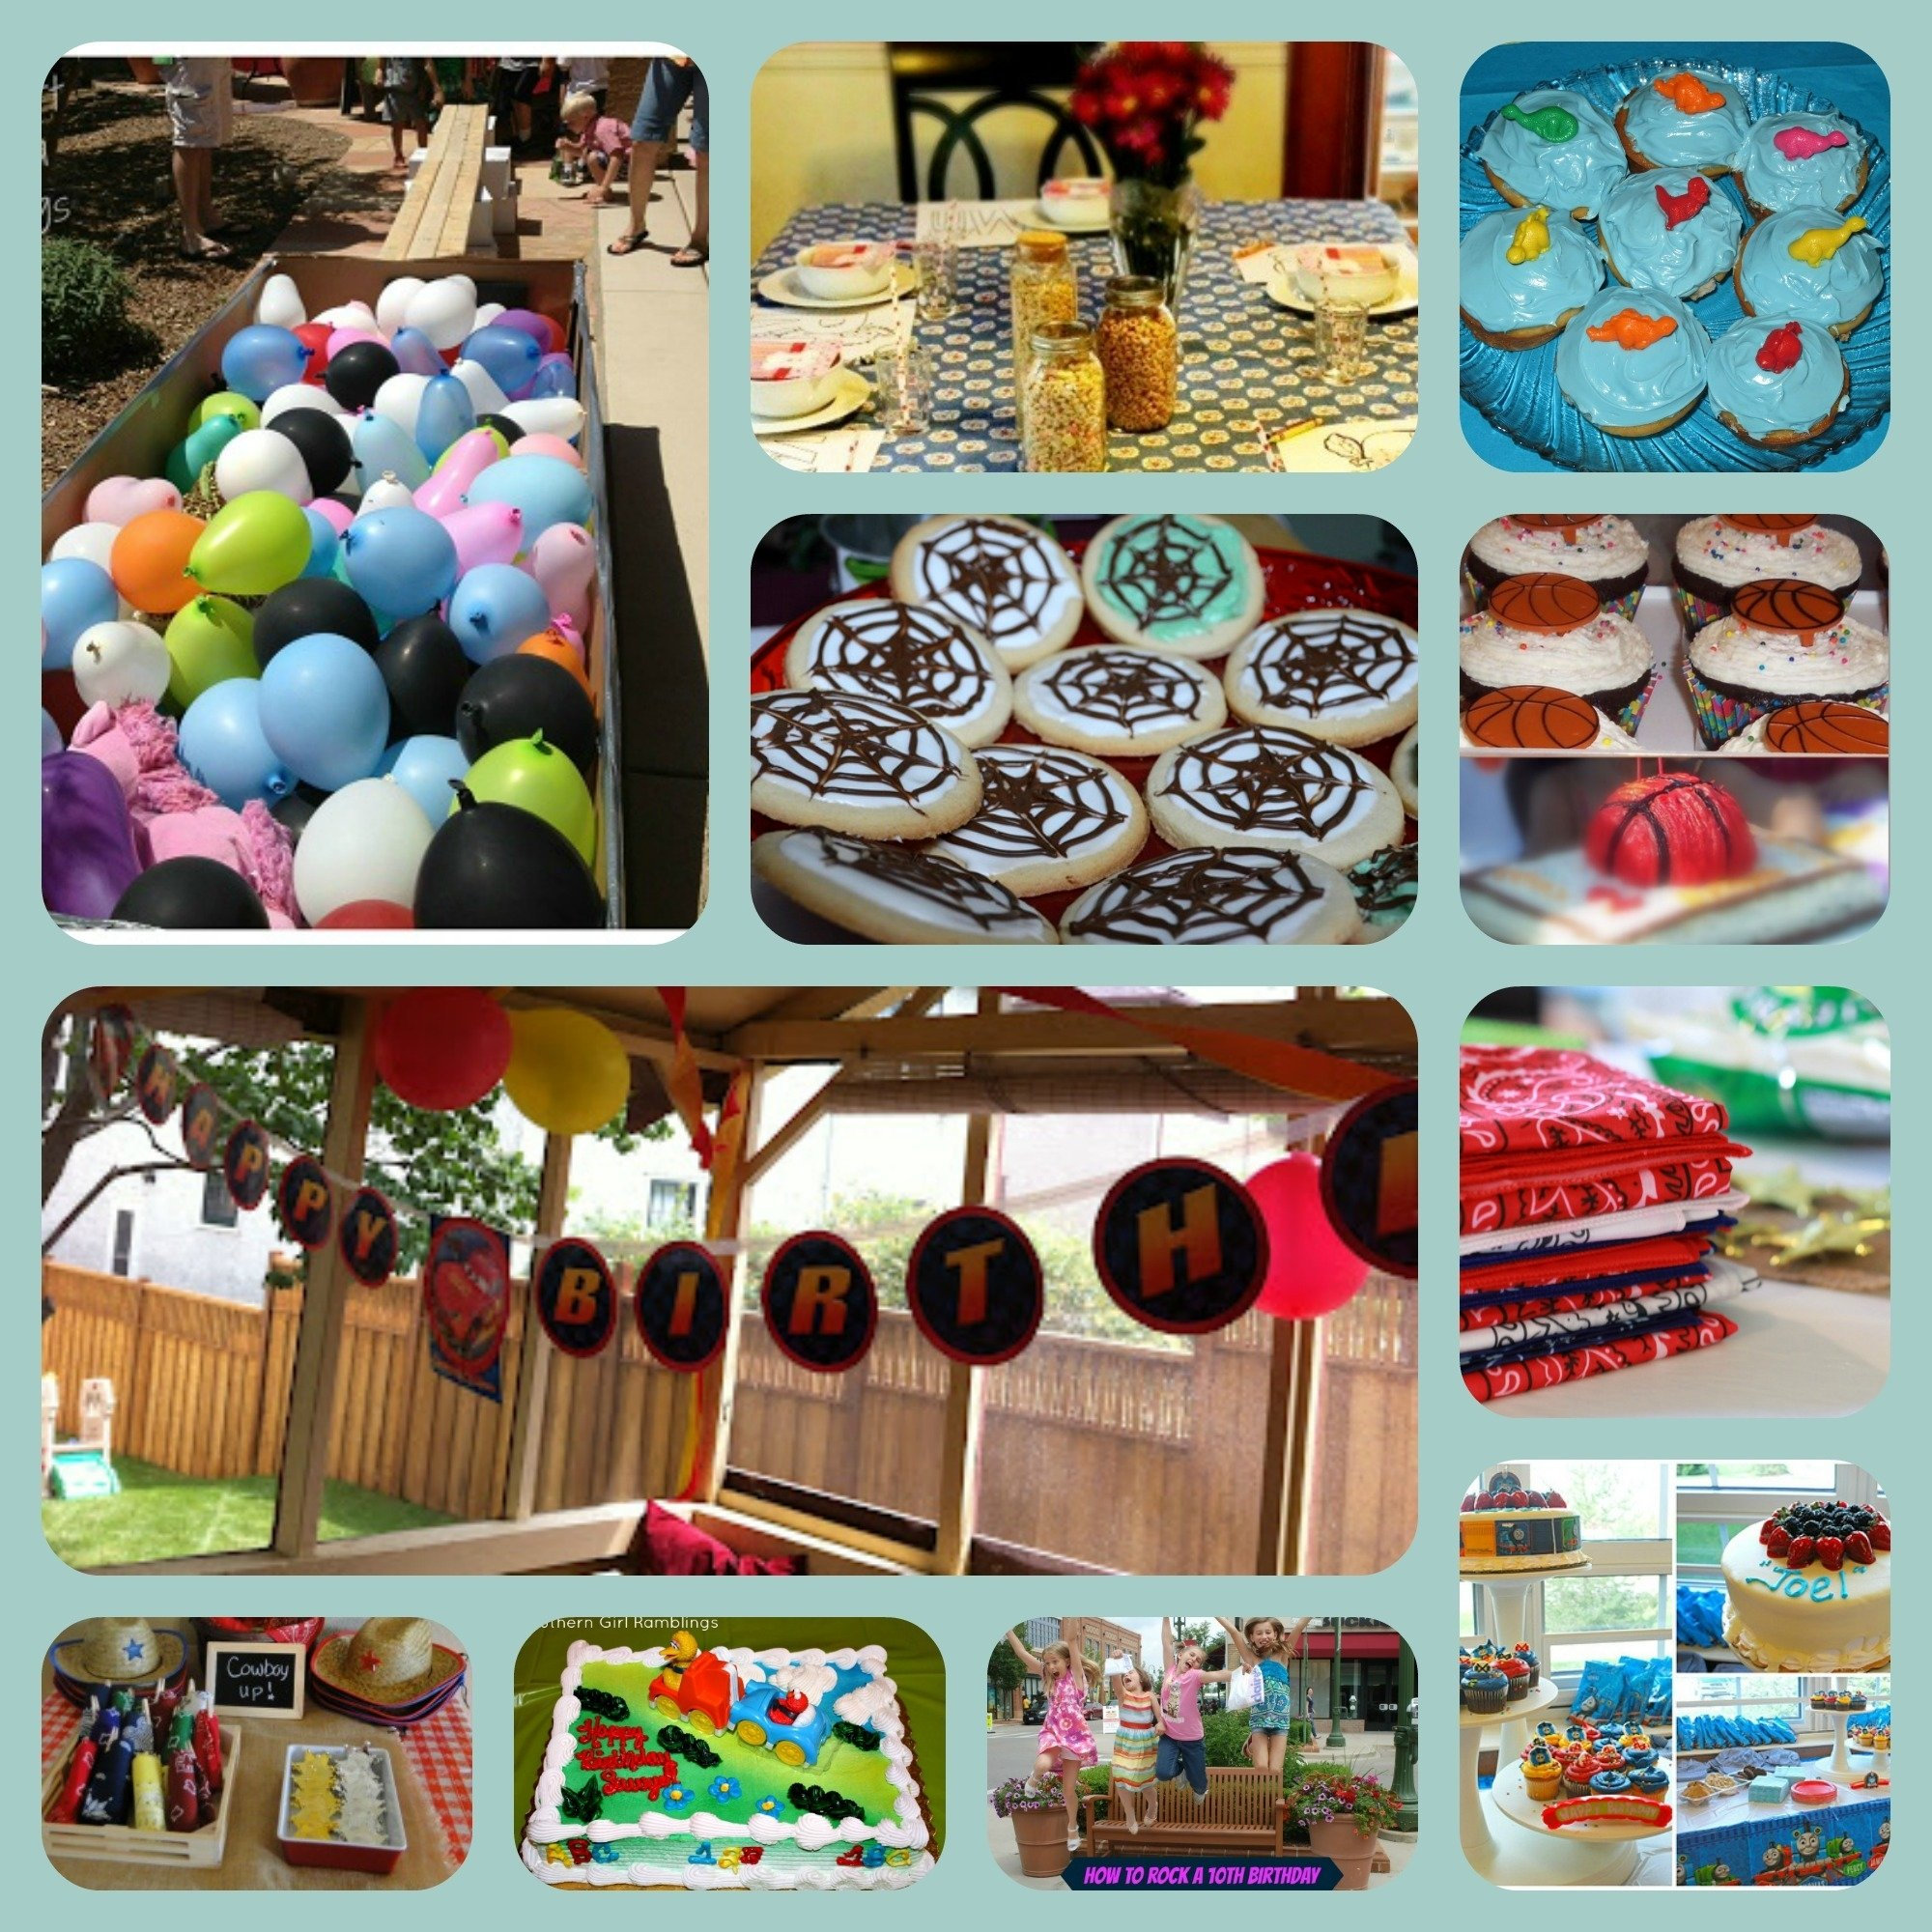 10 Stunning 10 Year Girl Birthday Party Ideas 40 birthday party themes ideas tutorials and printables 2021